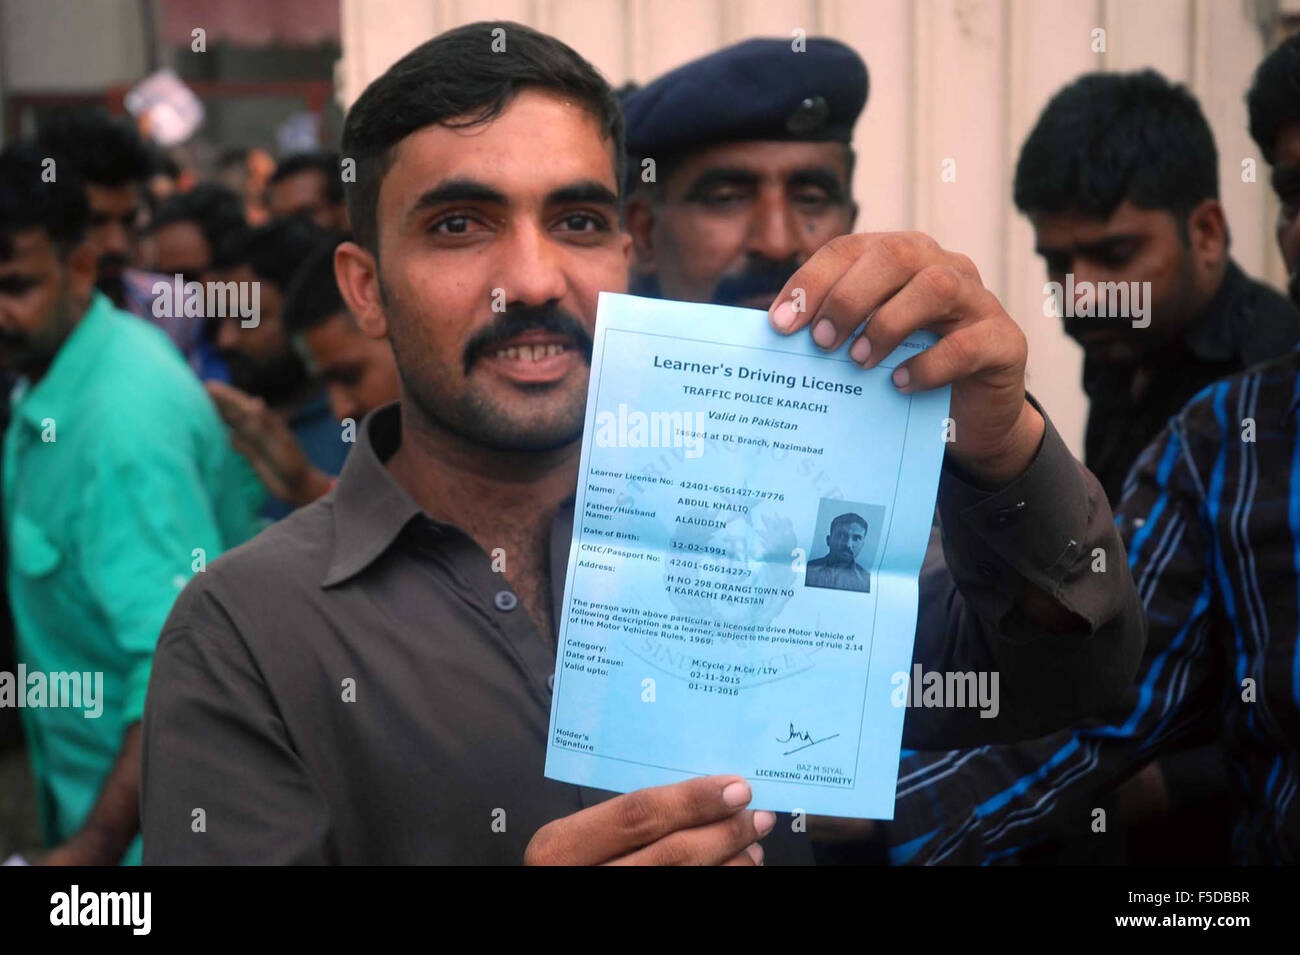 A Resident Of Karachi Showing His Learners Driving License Whereas The Large Numbers Of Residents Of Karachi Are Gathering At Traffic Police Office To Get